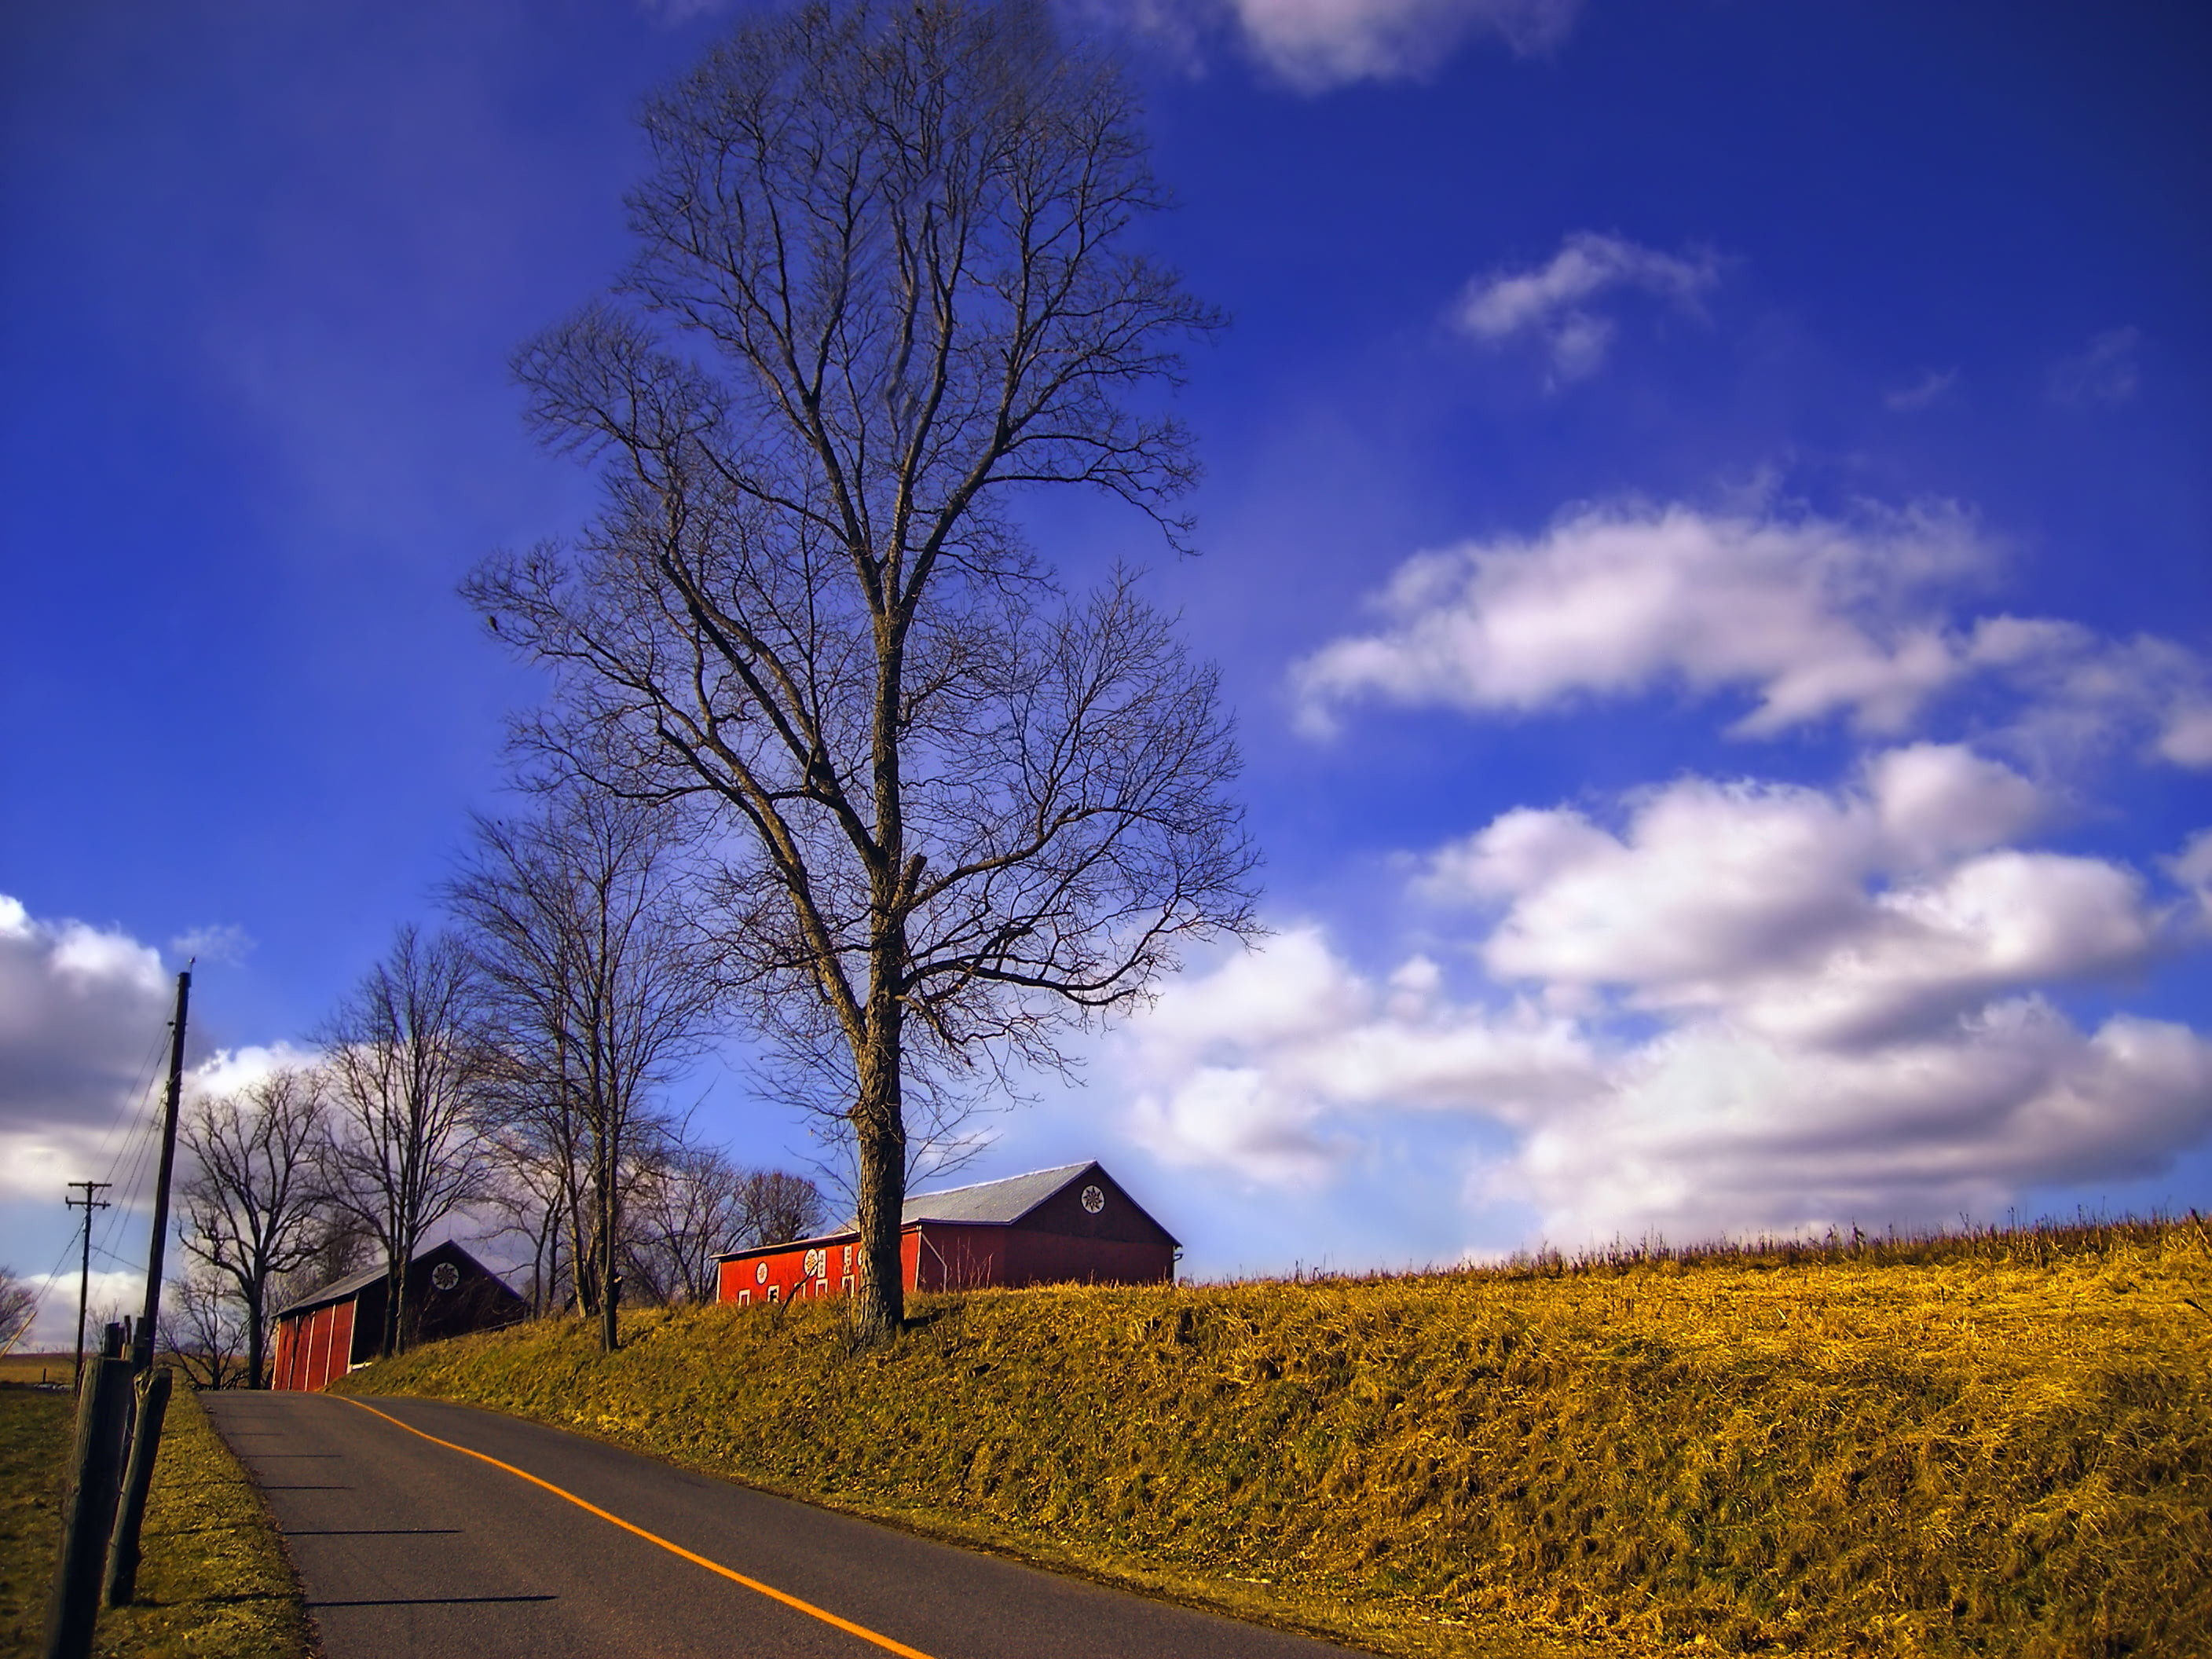 2816x2112 red barn houses beside a road with trees under a blue cloudy sky HD  wallpaper